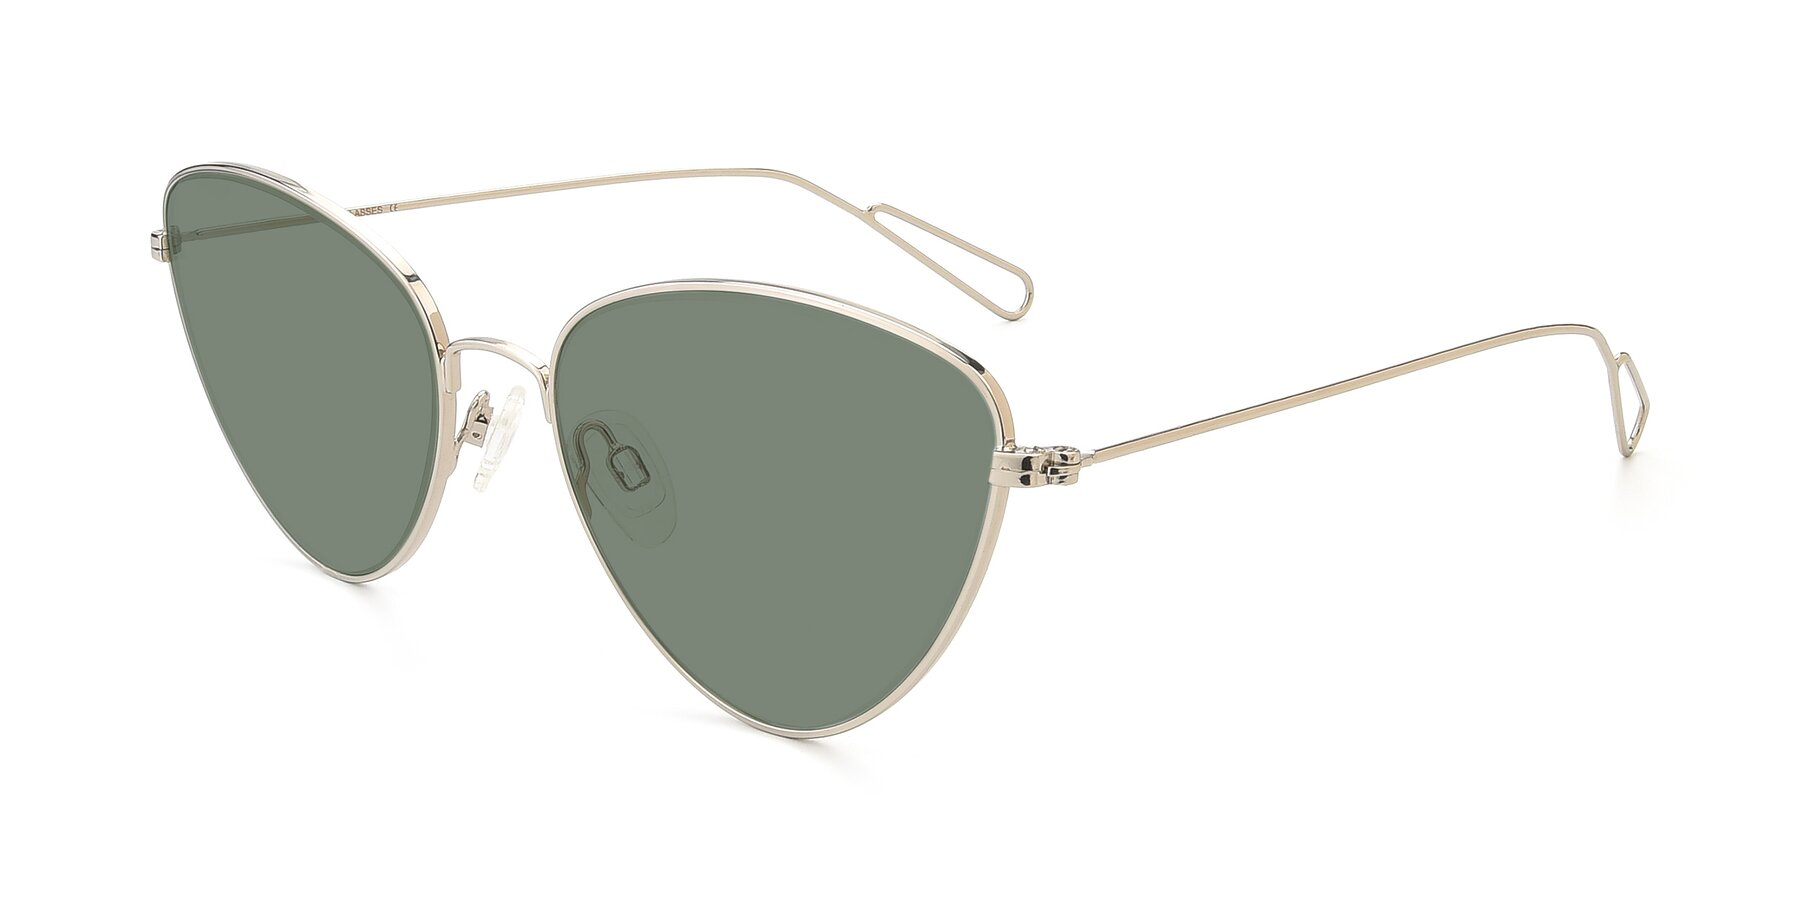 Angle of Butterfly Effect in Silver with Medium Green Tinted Lenses